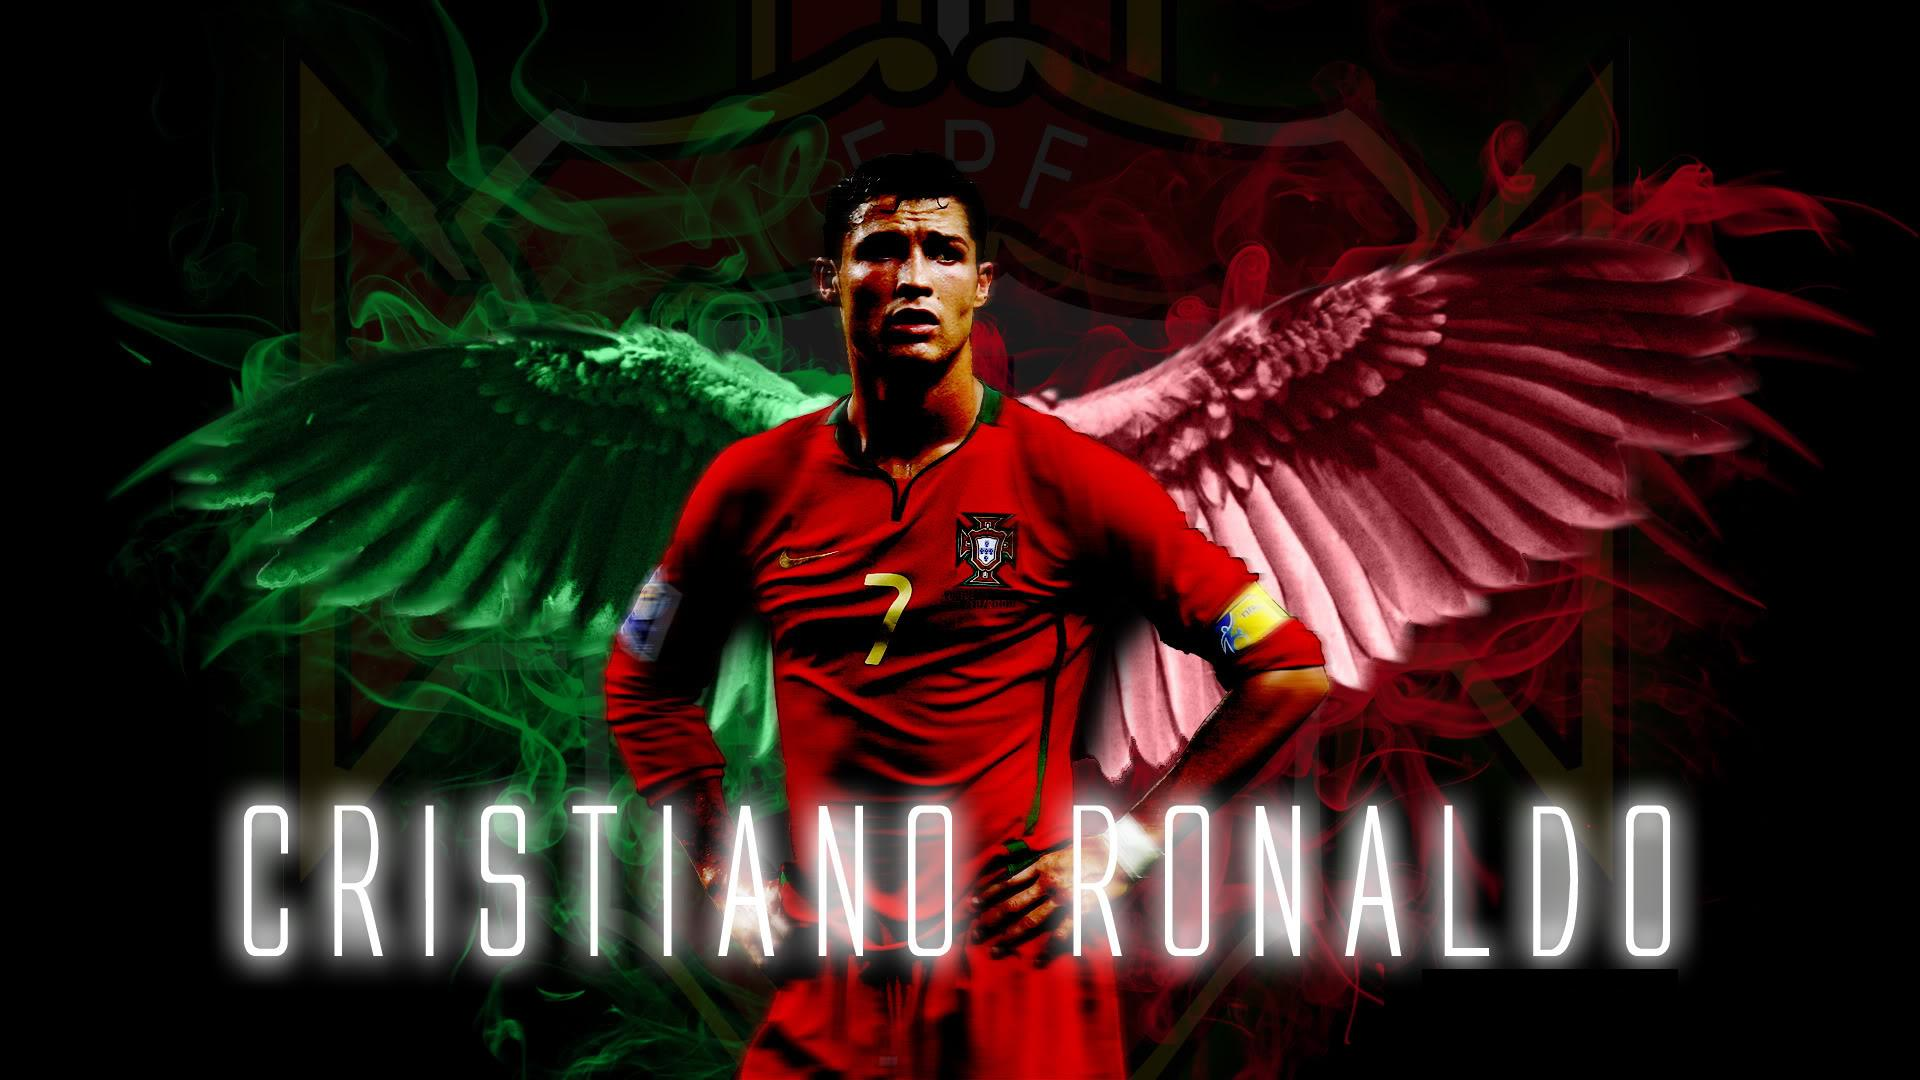 Portugal-Ronaldo-1920×1080-Portugal-Soccer-Adorable-Wallpape-wallpaper-wpc9008619